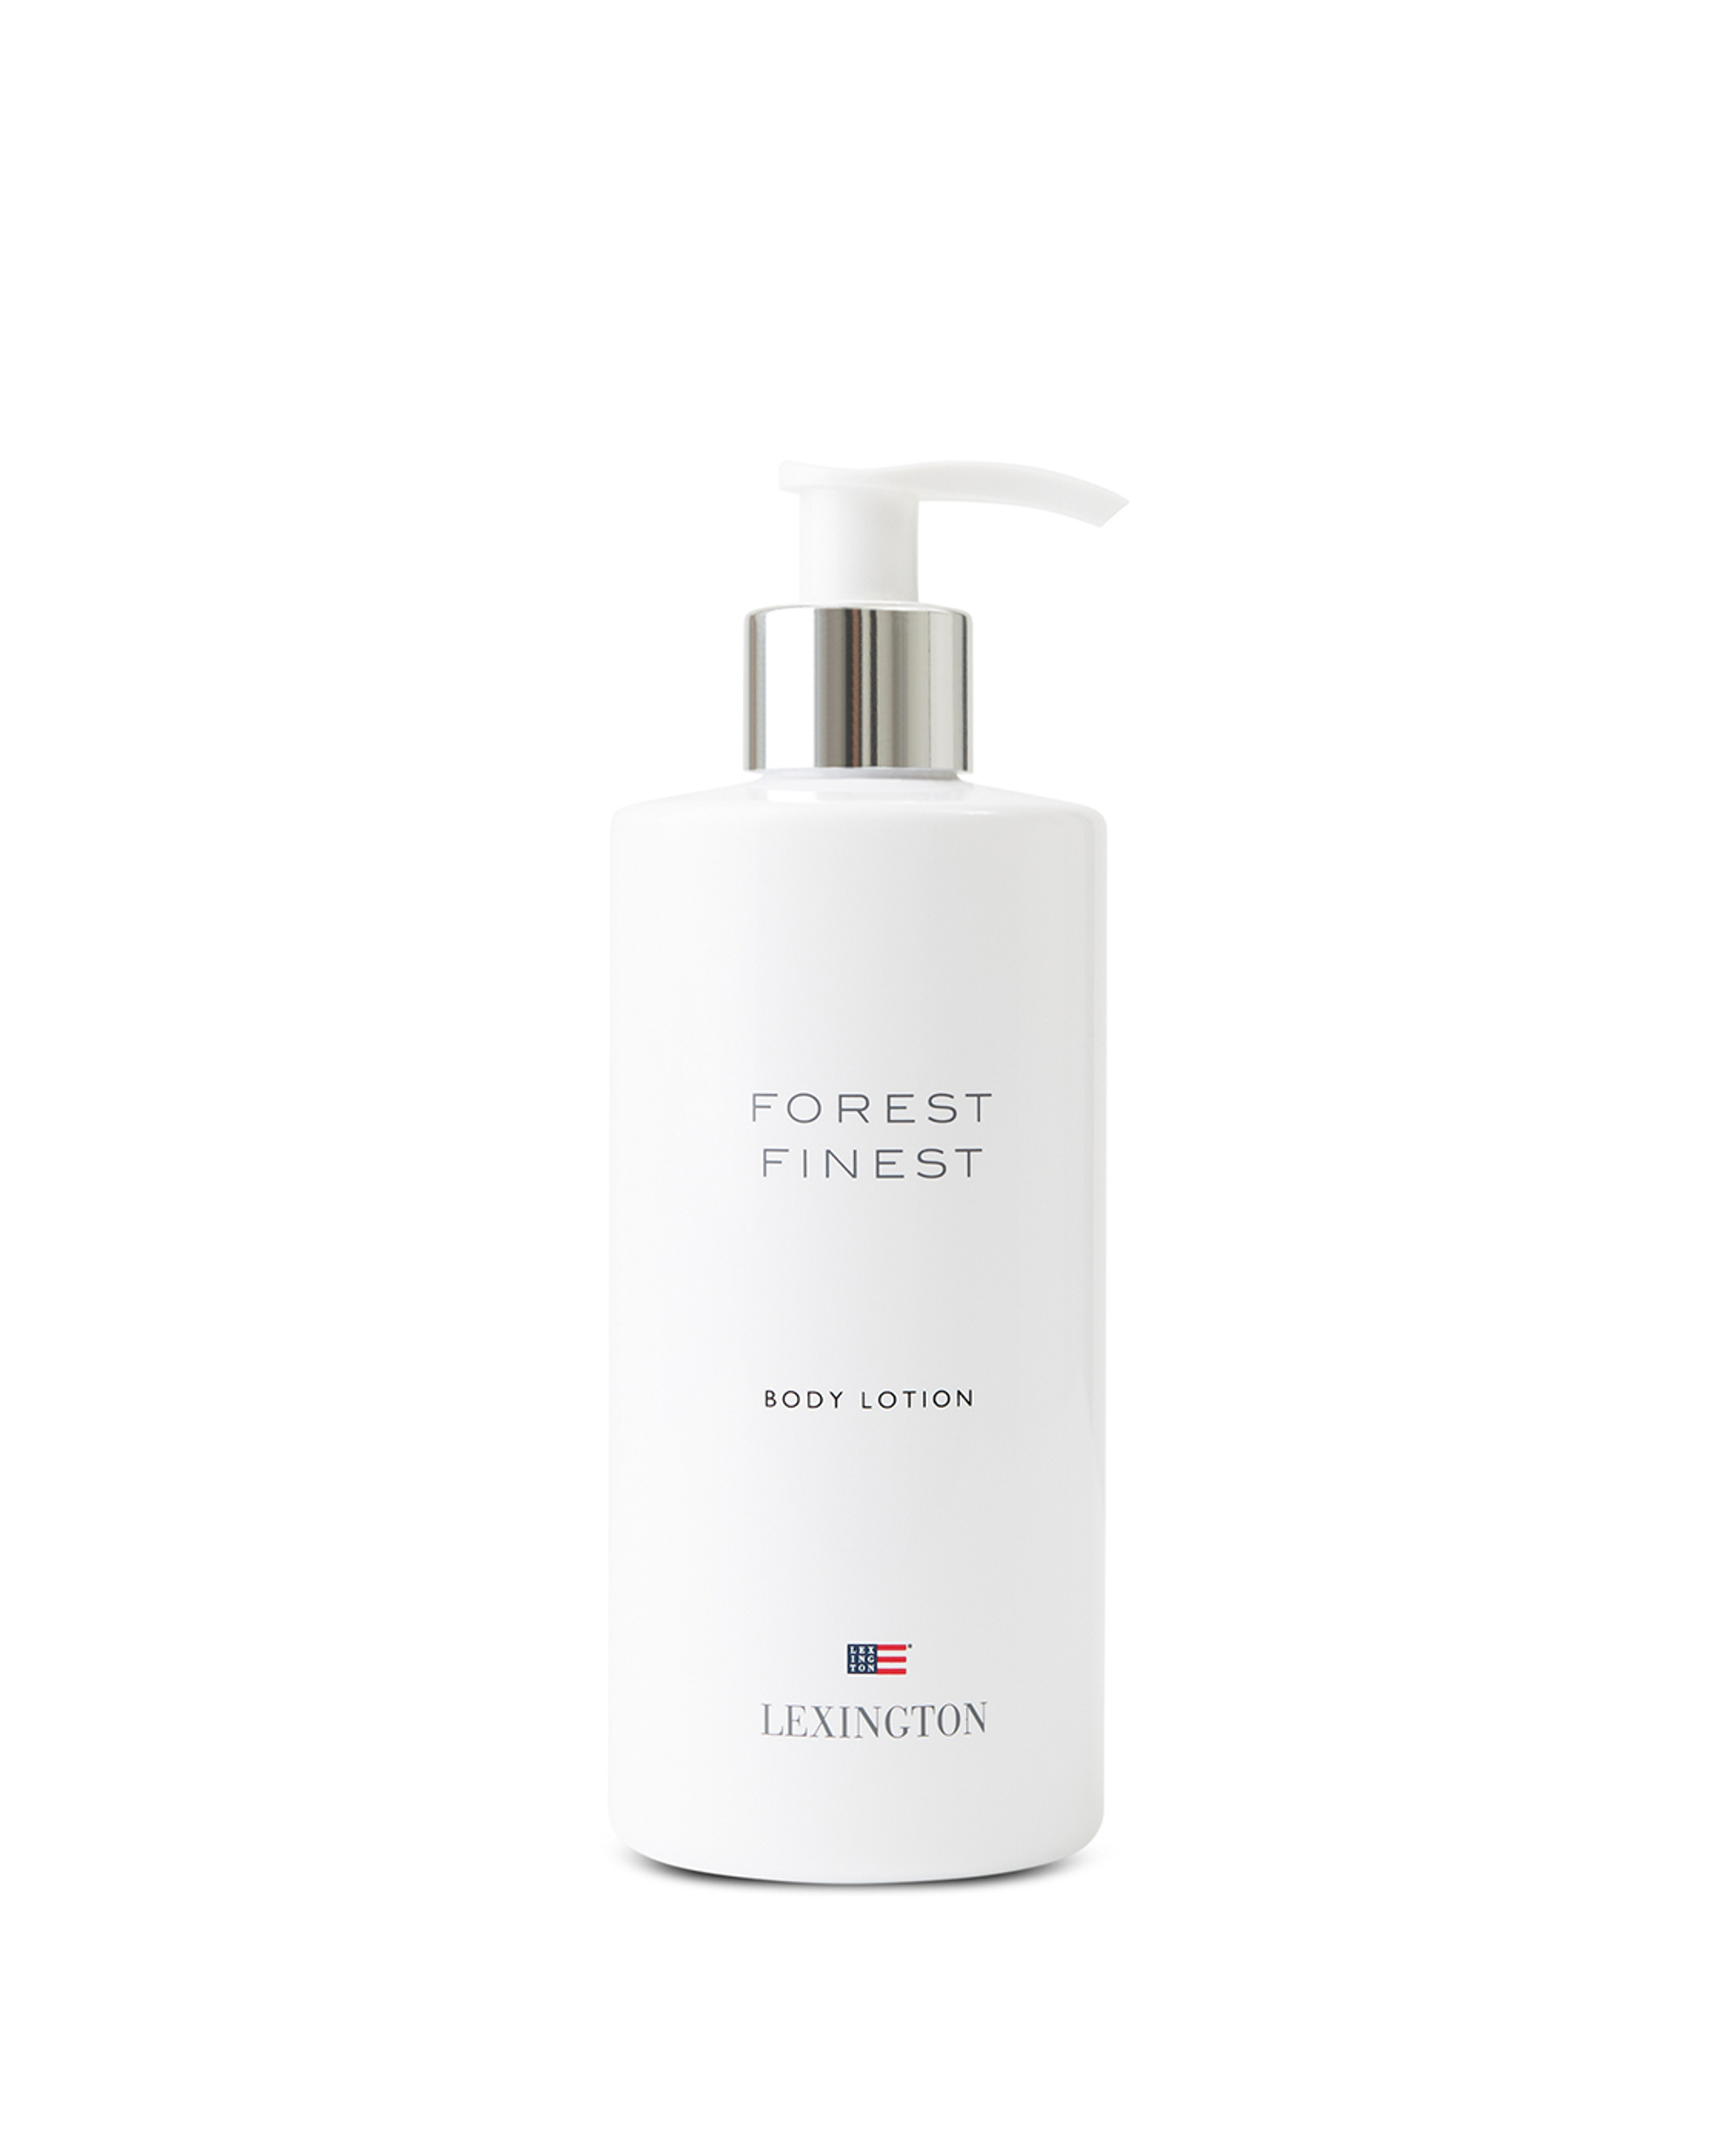 Bodylotion, Lexington, Forest finest